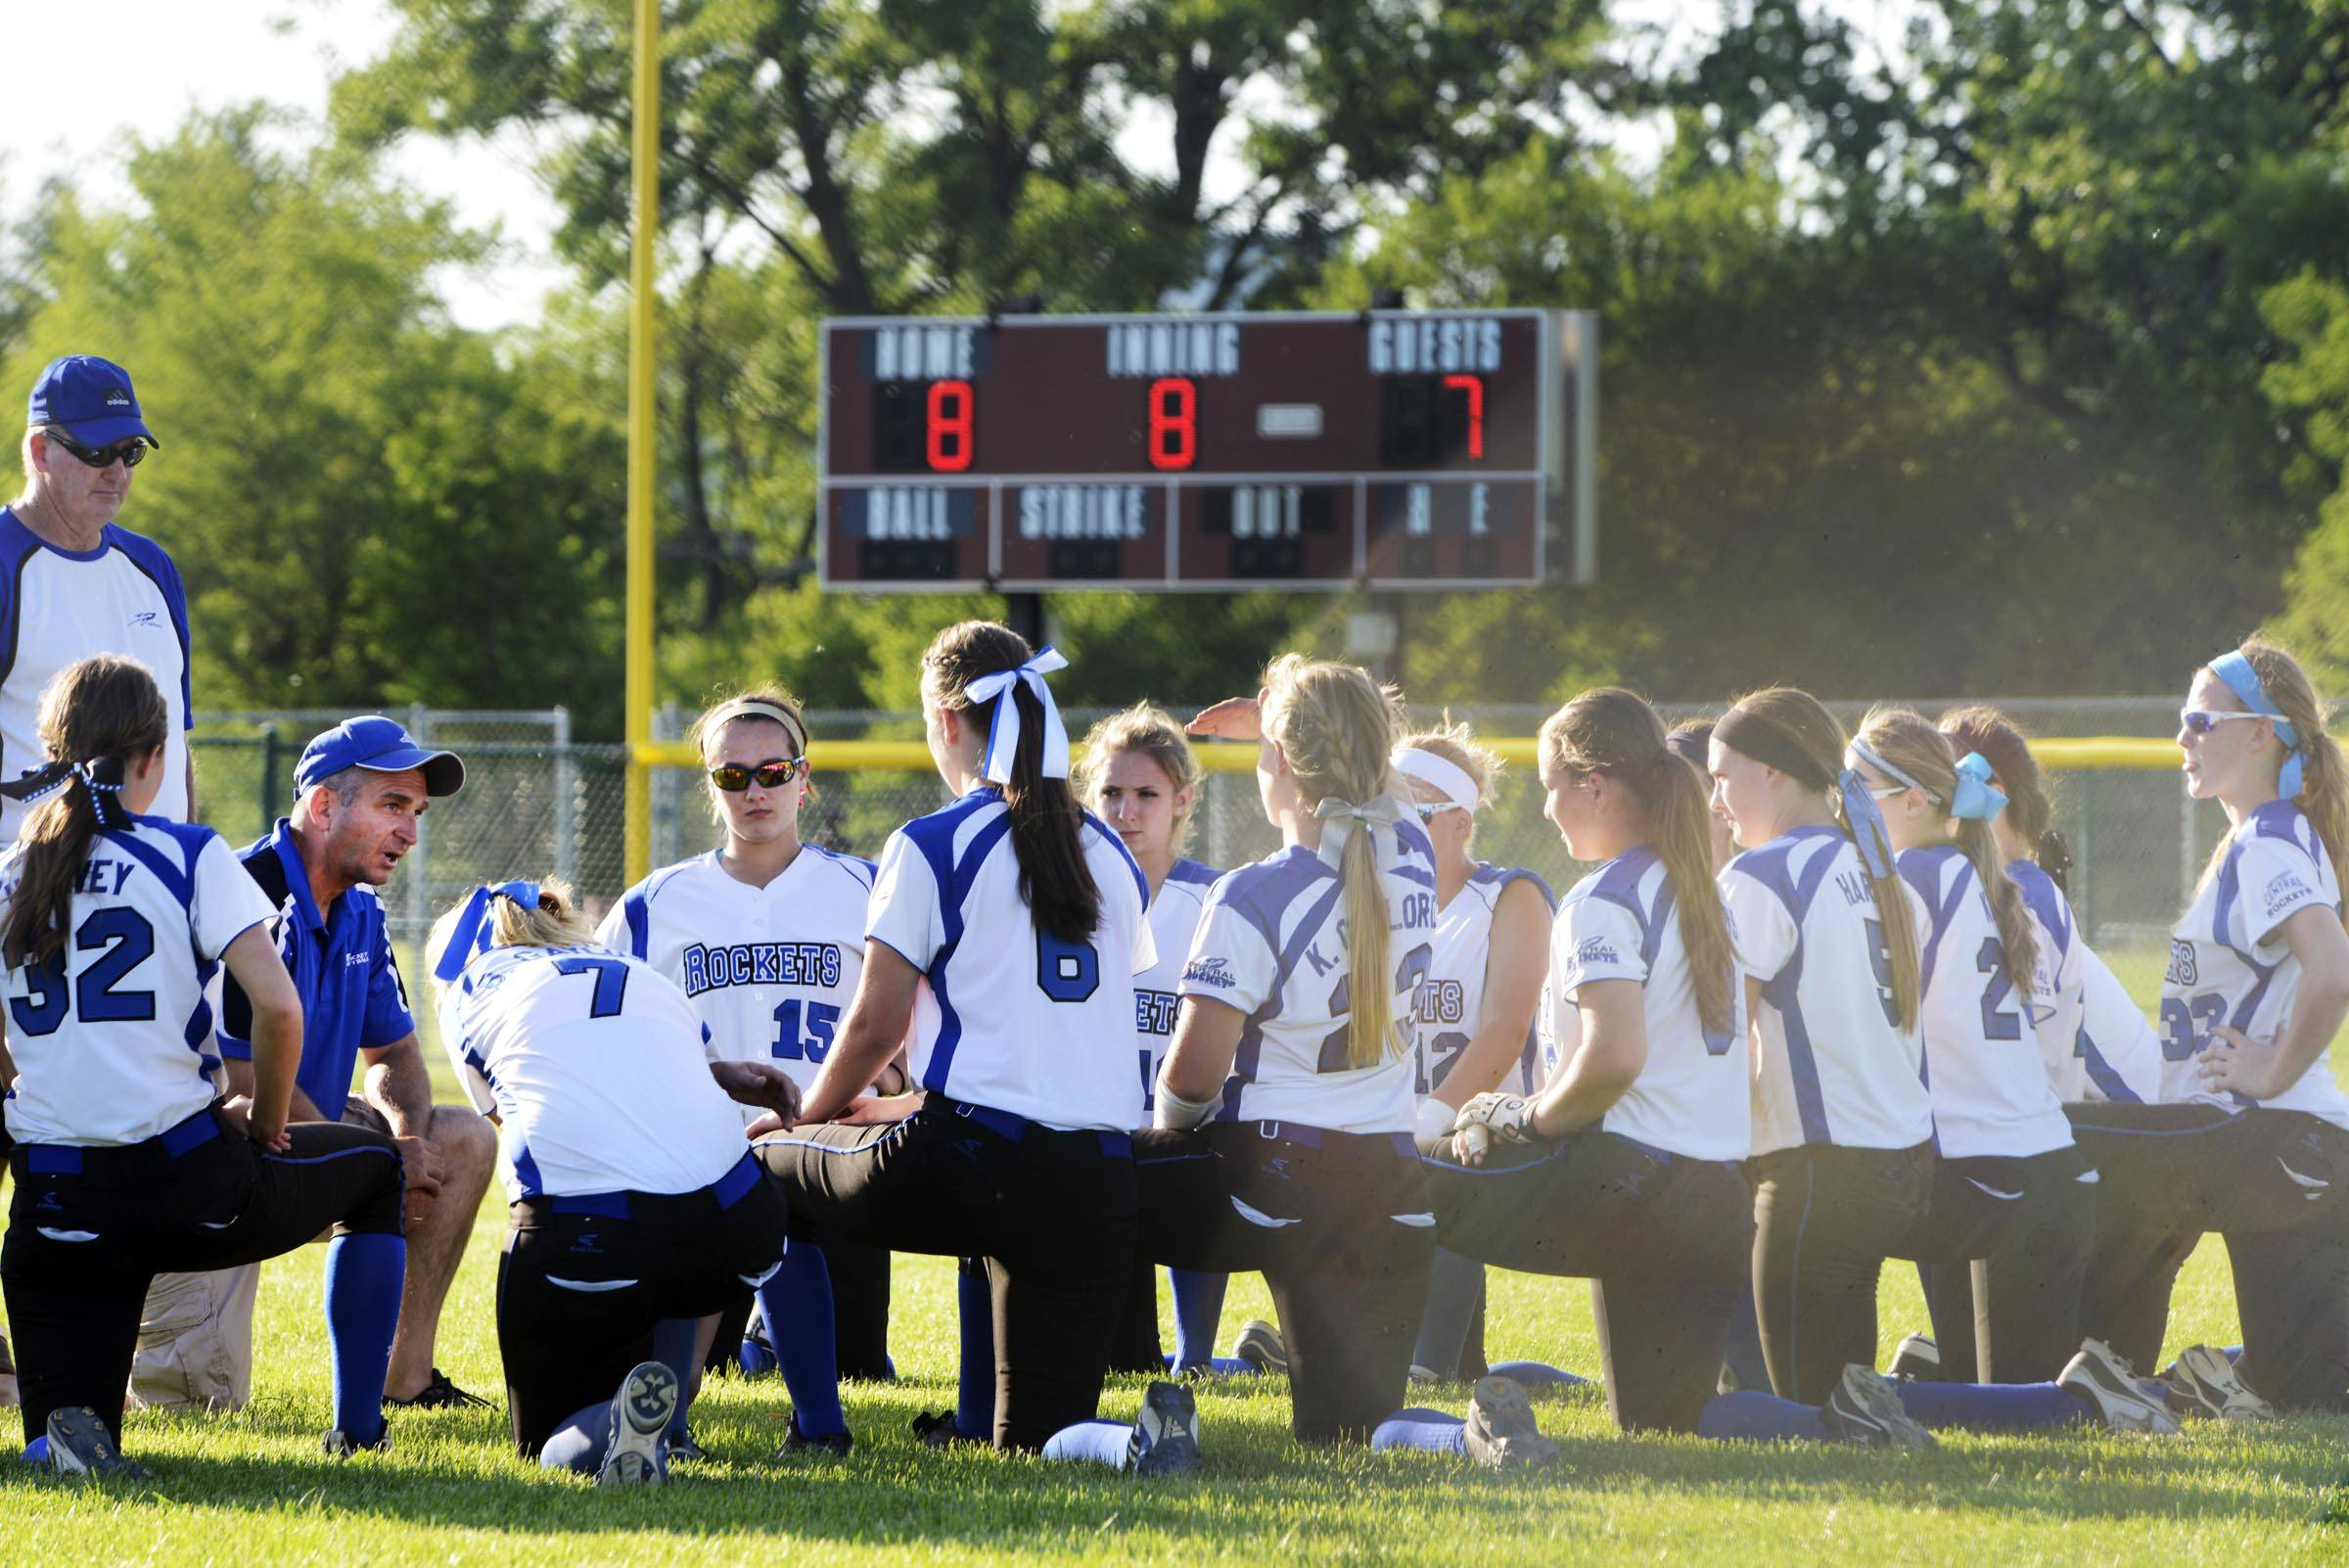 Burlington Central head coach Wade Maisto, kneeling at far left, meets with his team in the outfield under the scoreboard that shows their loss to Sterling Tuesday in the Class 3A Marengo sectional semifinal game. Maisto is stepping down as the Rockets' coach.